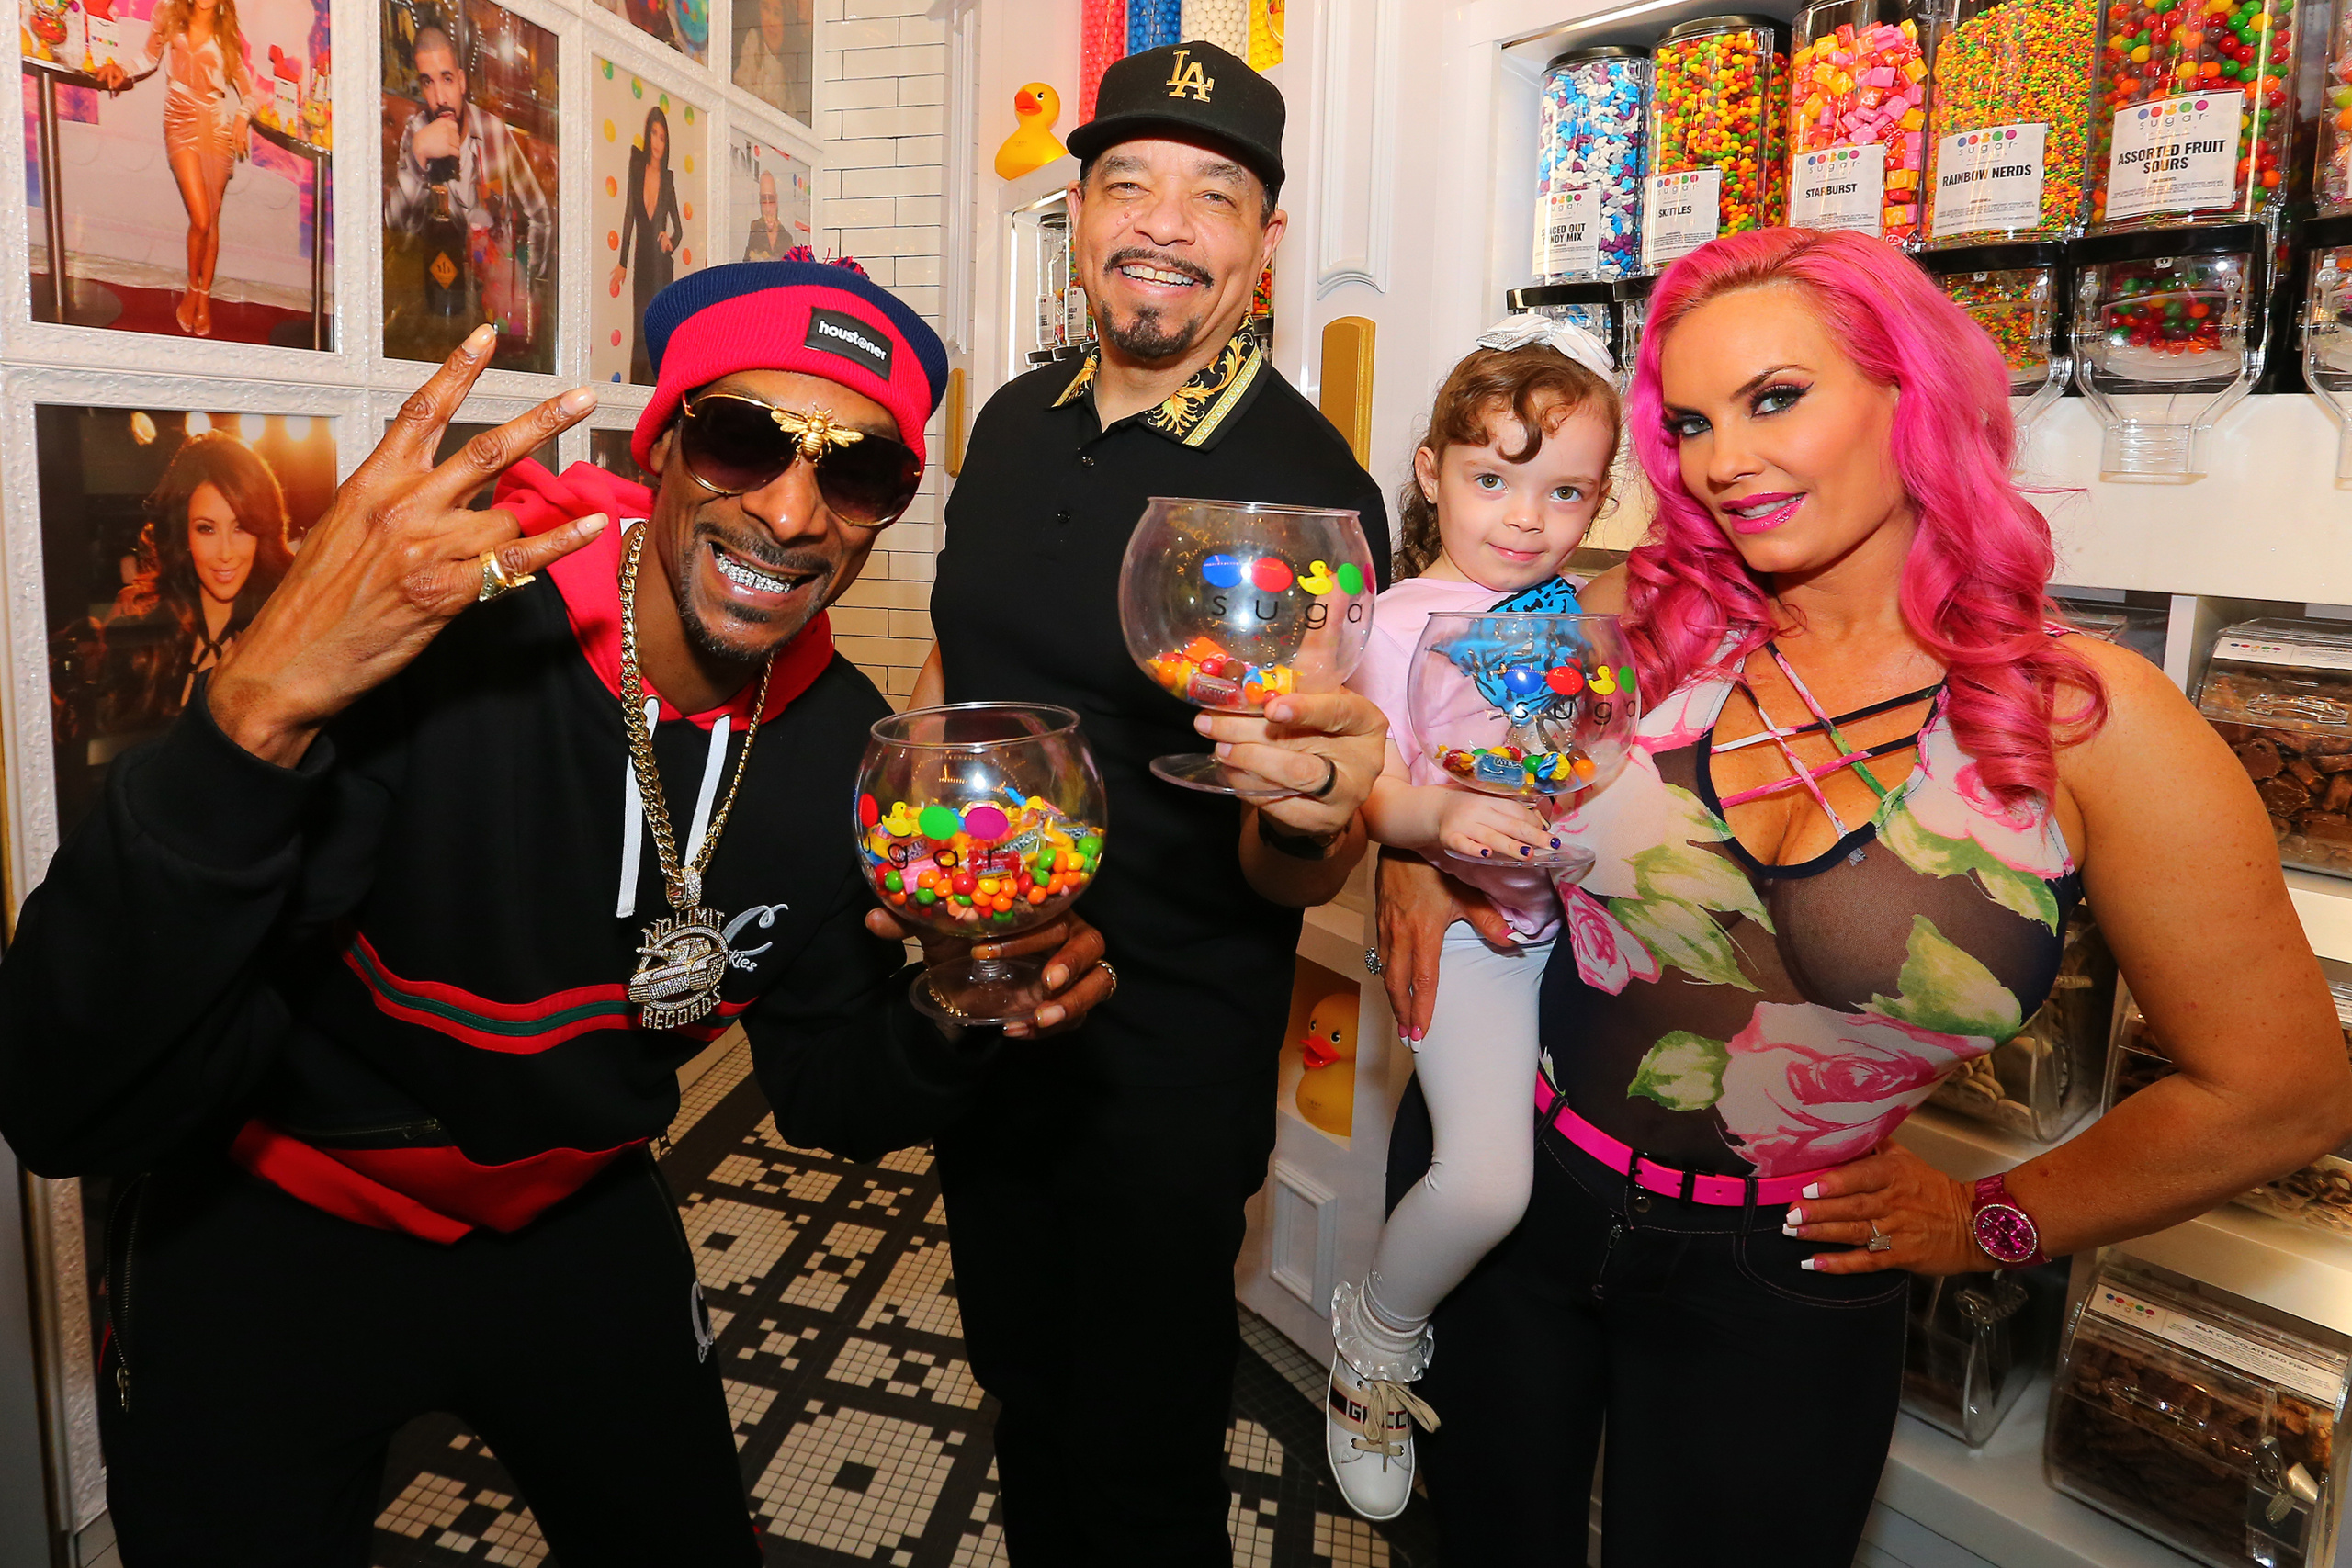 Sugar Factory American Brasserie opens at Seminole Hard Rock Hotel & Casino with Snoop Dogg, Ice-T, and Coco